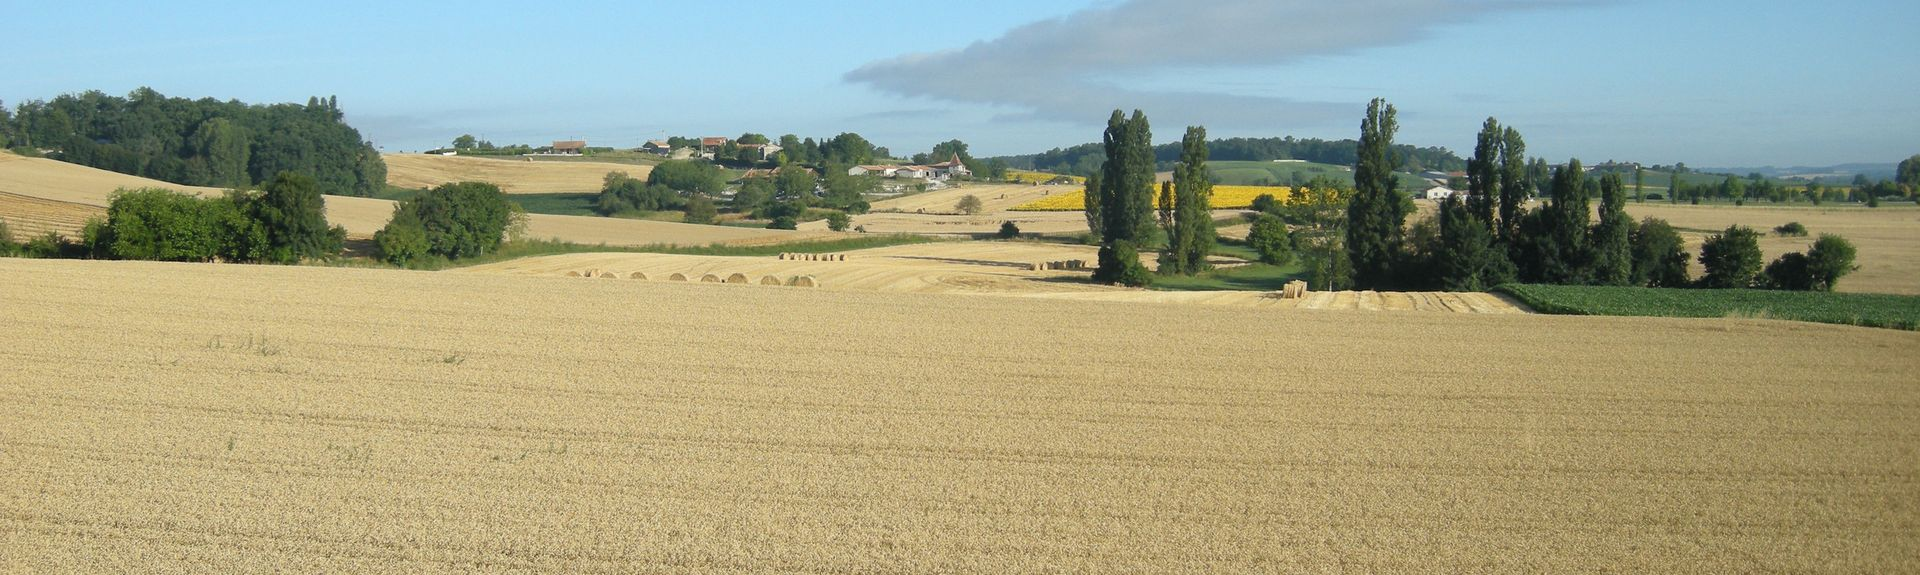 Chadurie, Charente, France